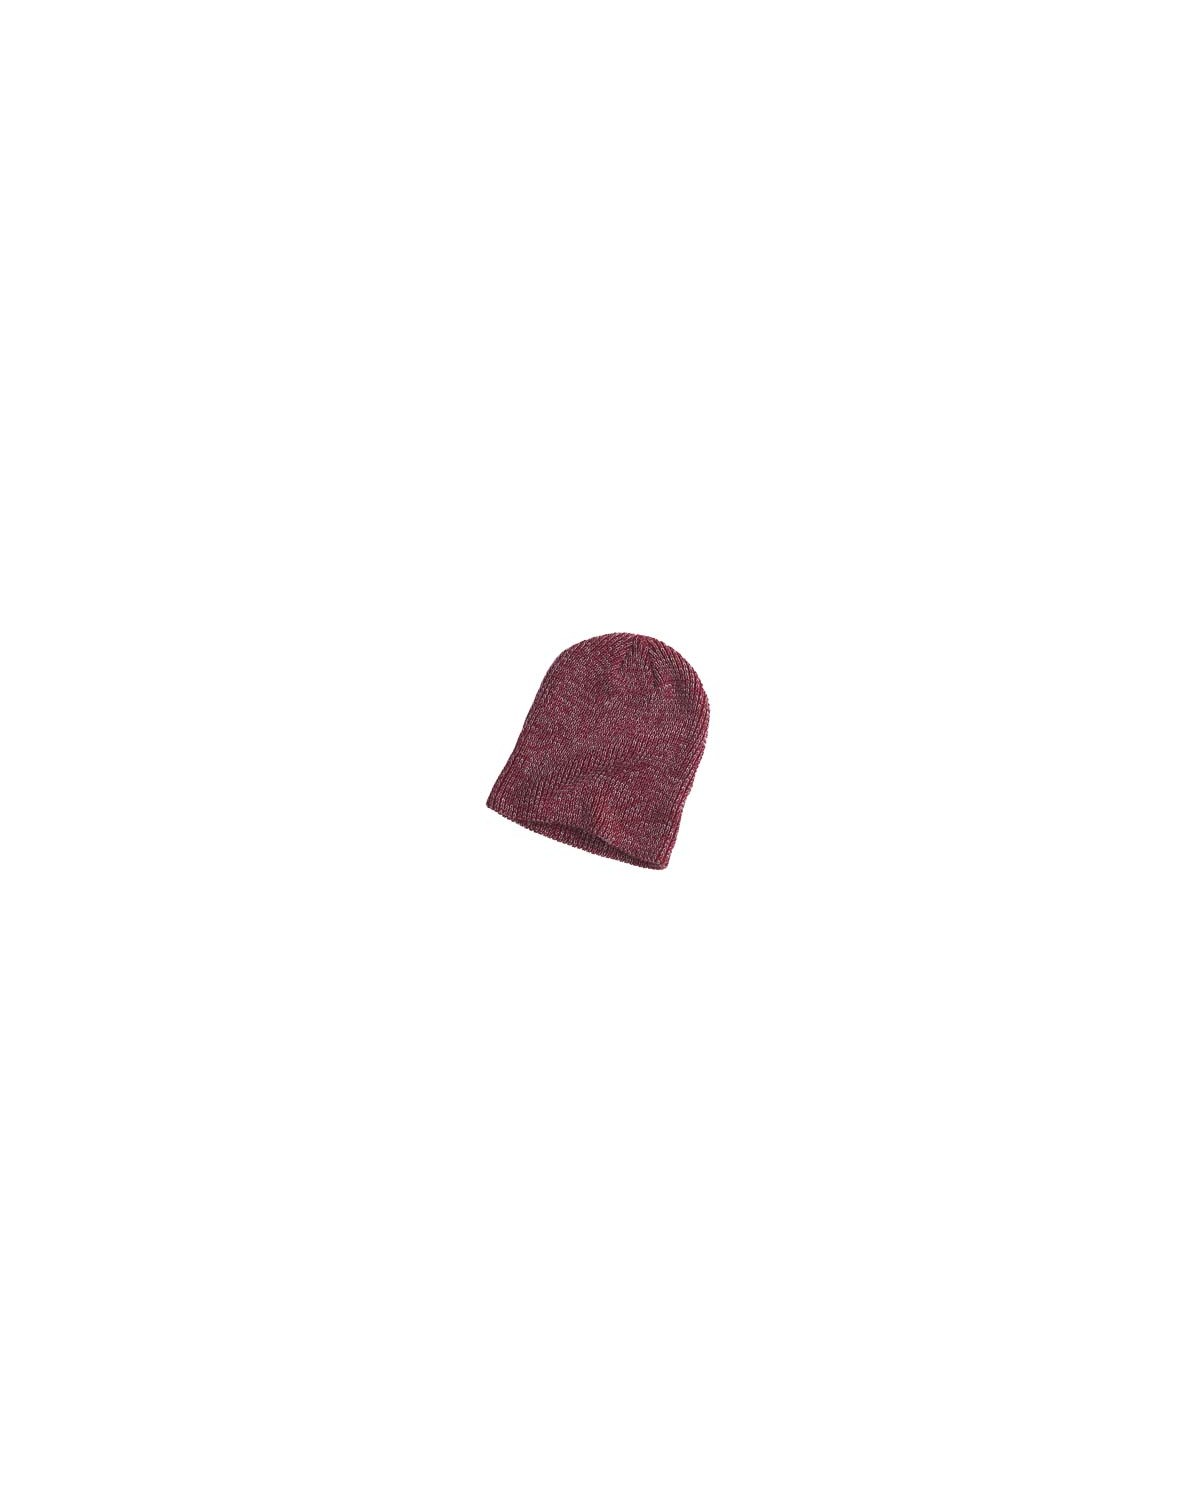 BA524 Big Accessories MAROON/GRAY